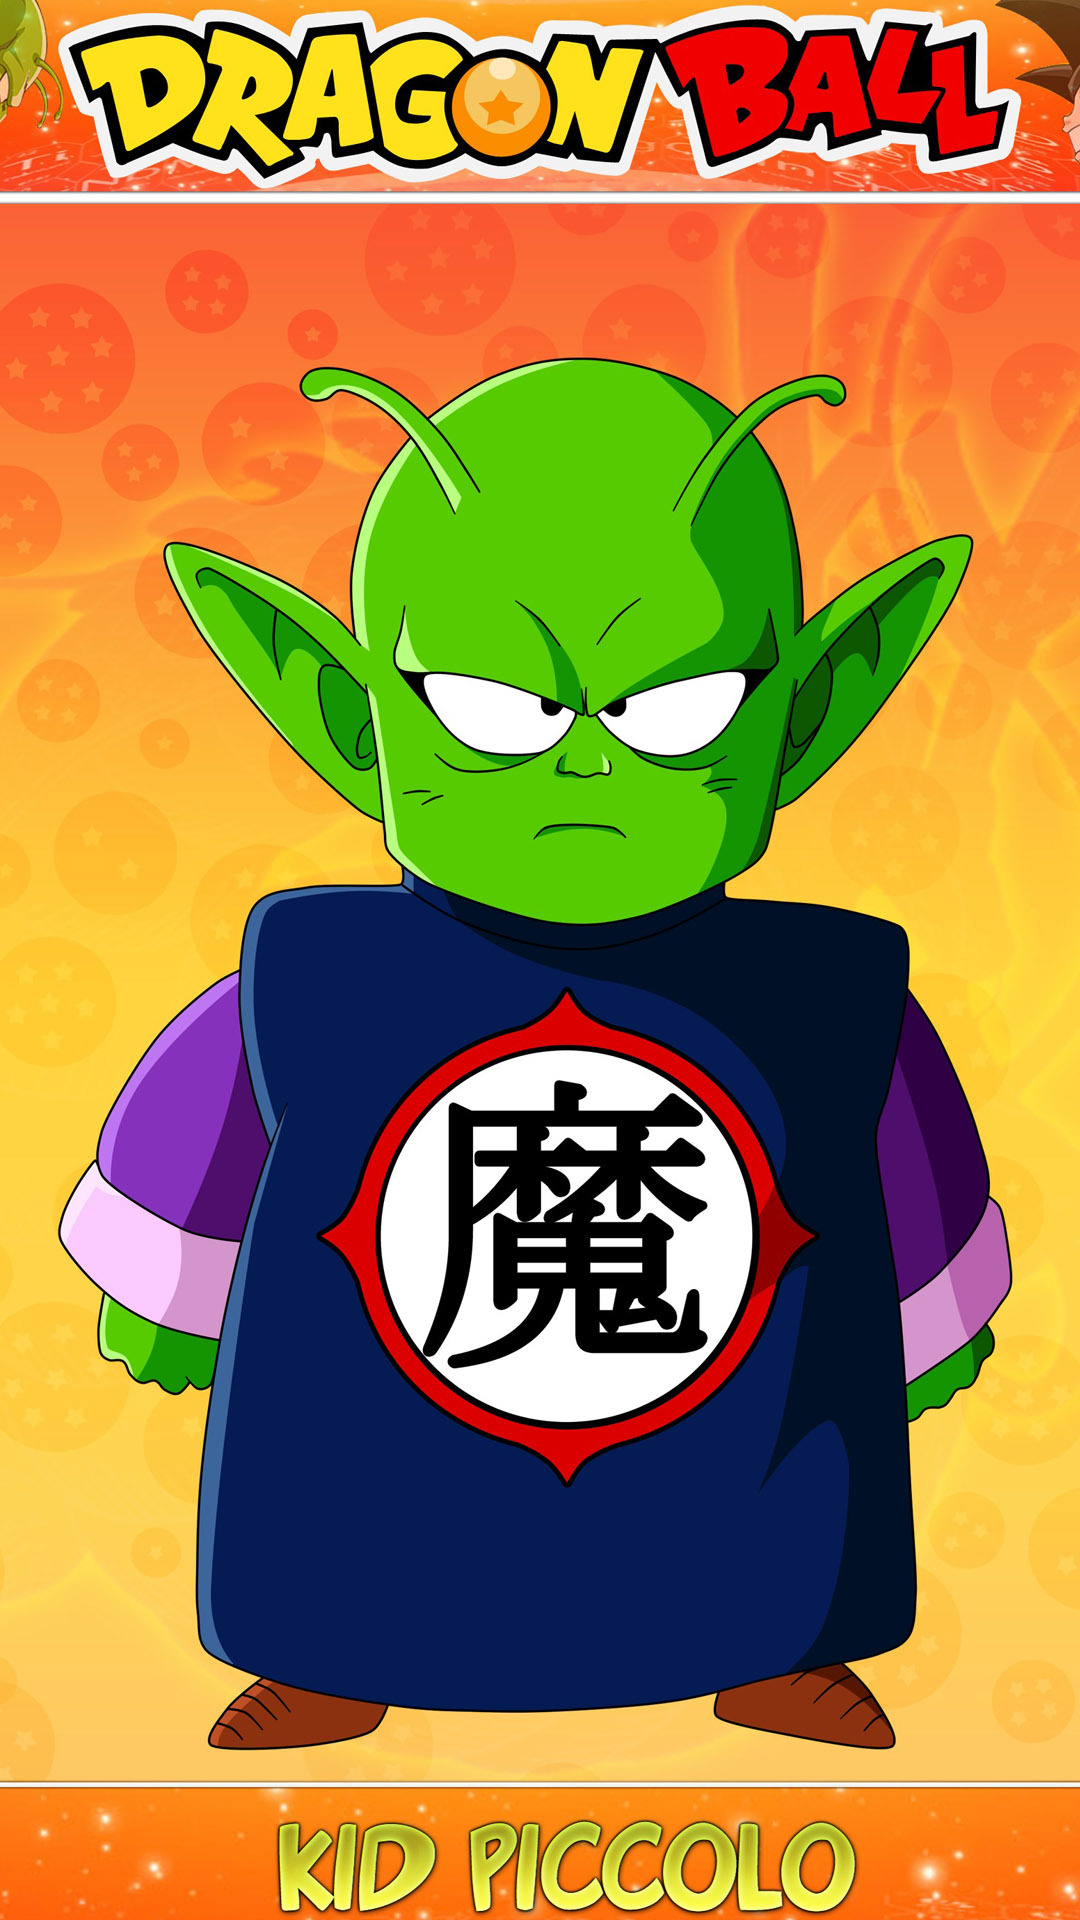 Kid piccolo dragon ball anime